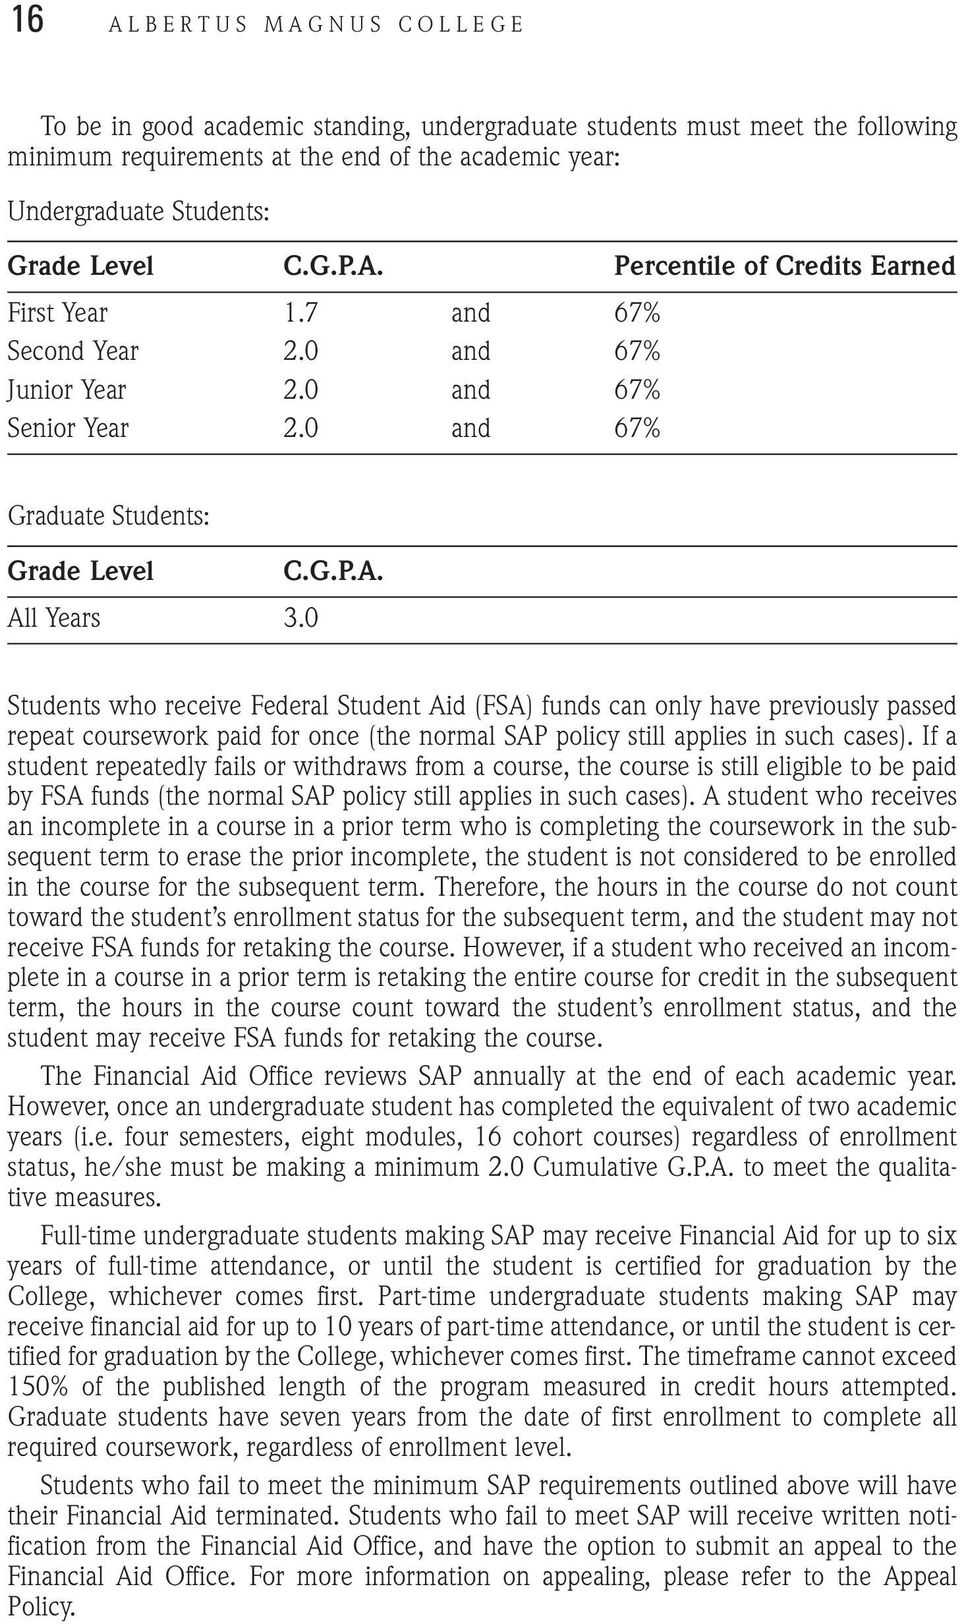 0 Students who receive Federal Student Aid (FSA) funds can only have previously passed repeat coursework paid for once (the normal SAP policy still applies in such cases).